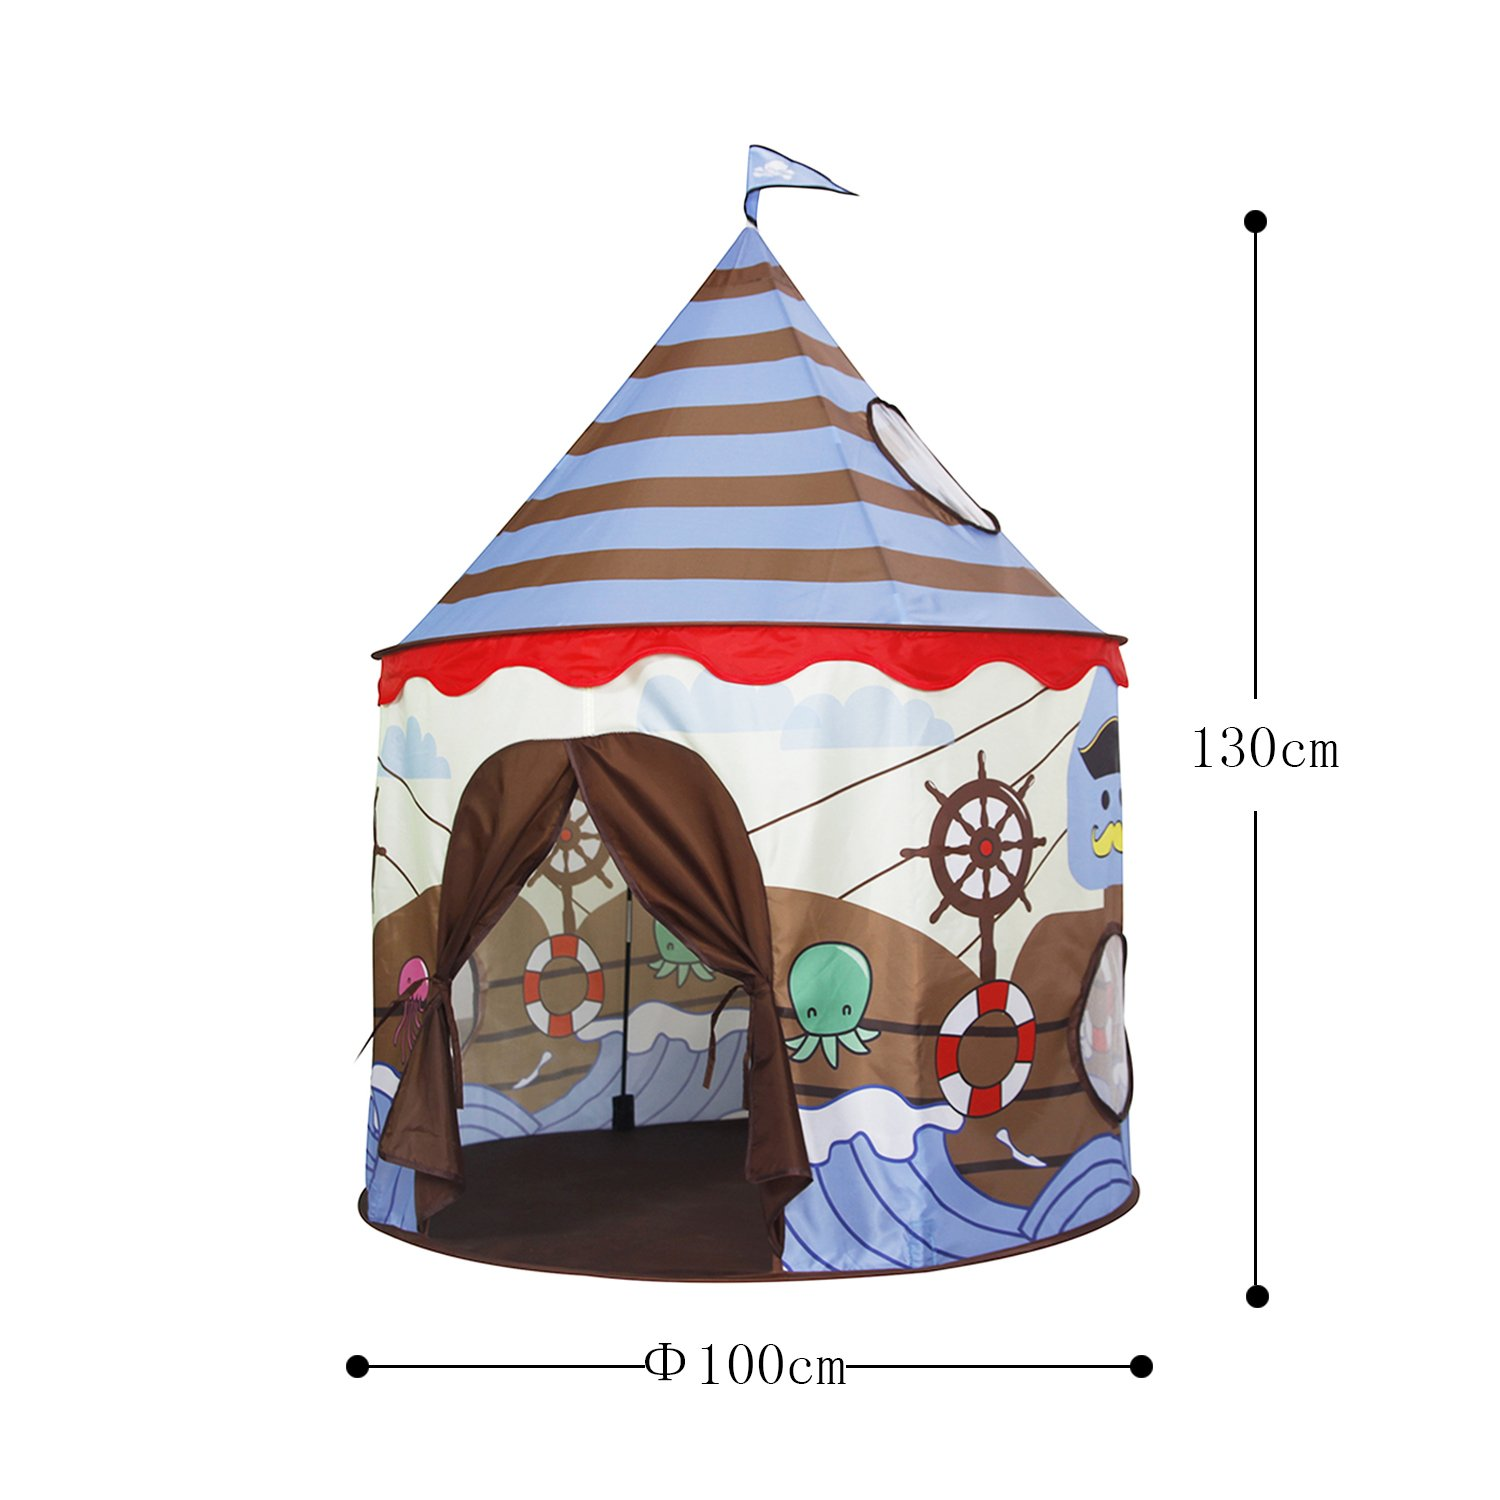 Homfu Play Tent For Kids Castle Playhouse For Children Boys Viking Pattern Popup Tent